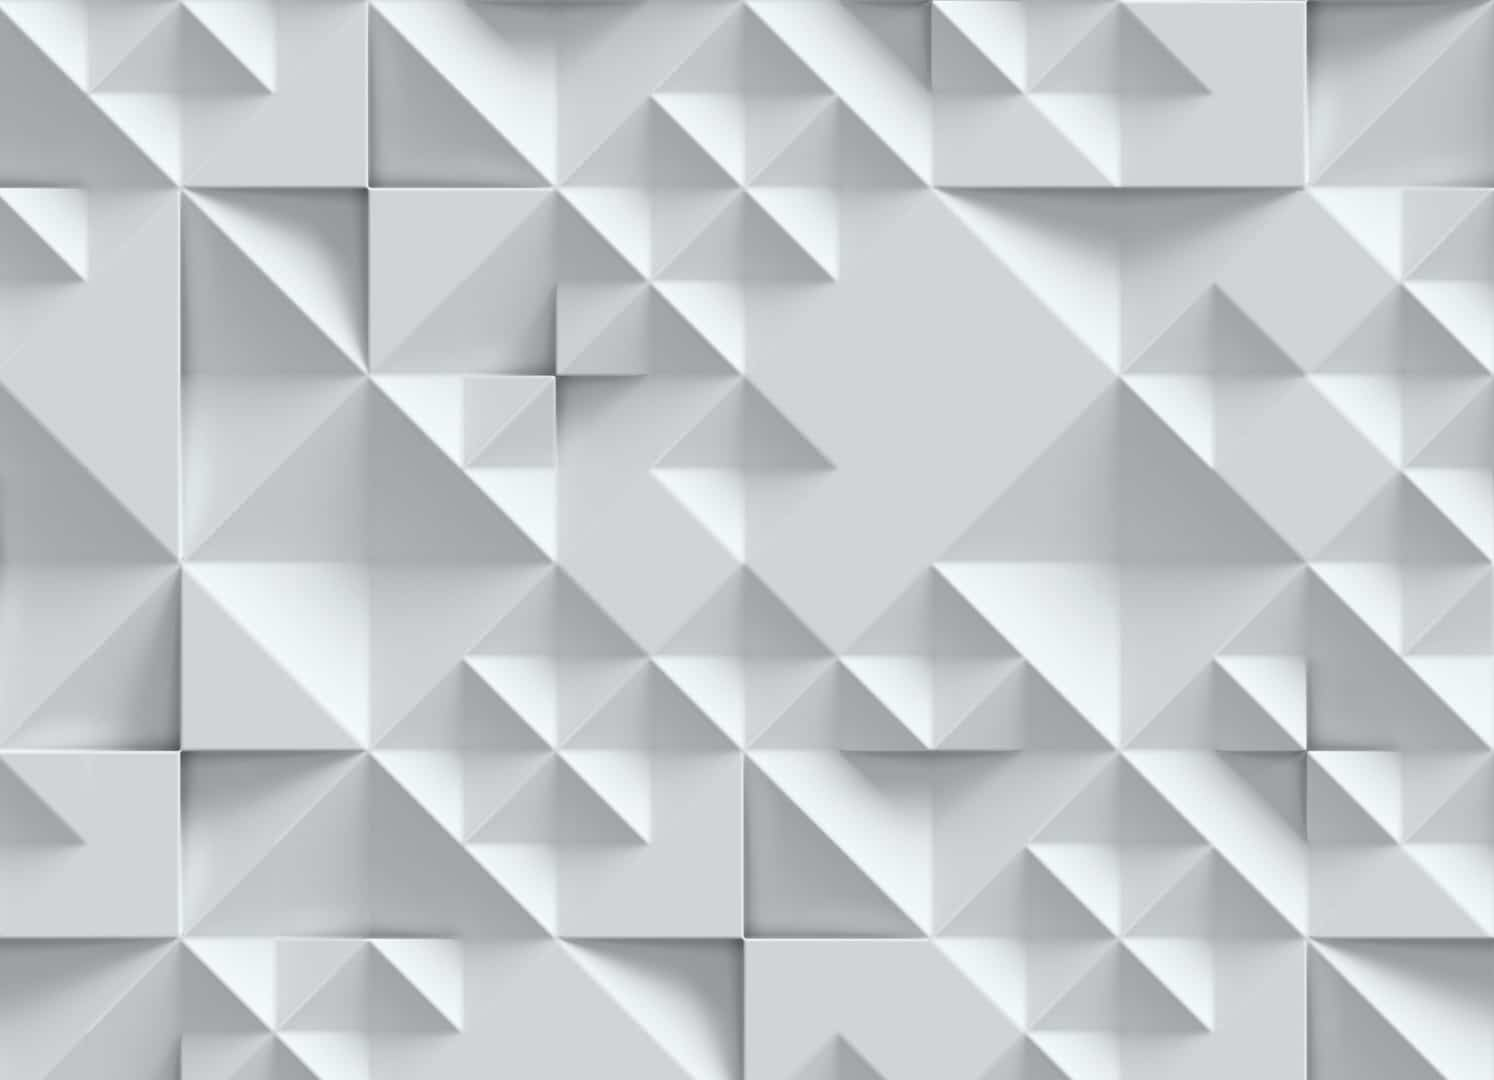 geometrical seamless 3d background